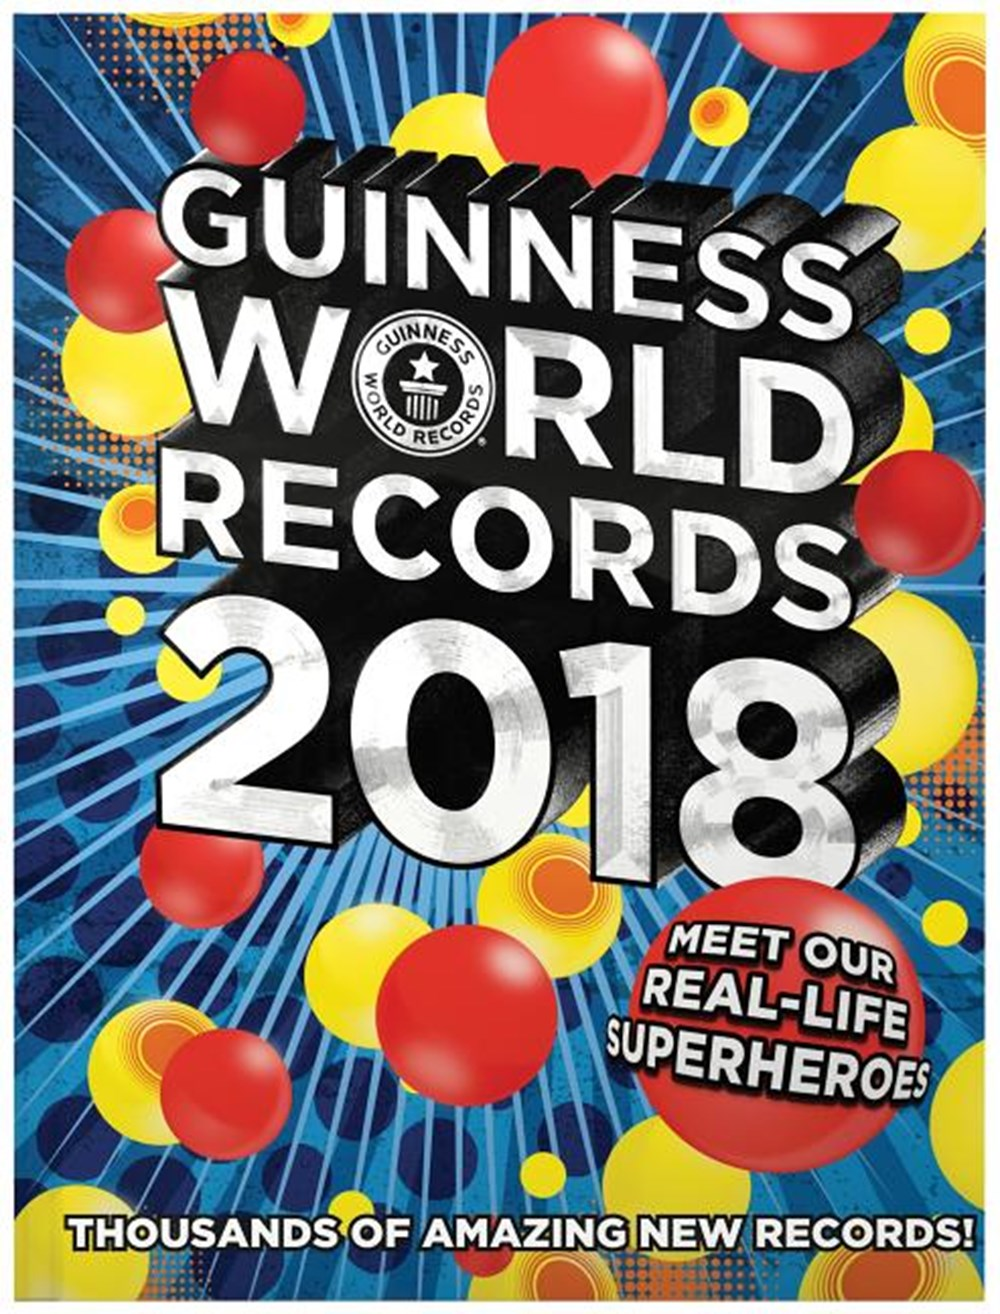 Guinness World Records 2018 Meet Our Real-Life Superheroes (2018)